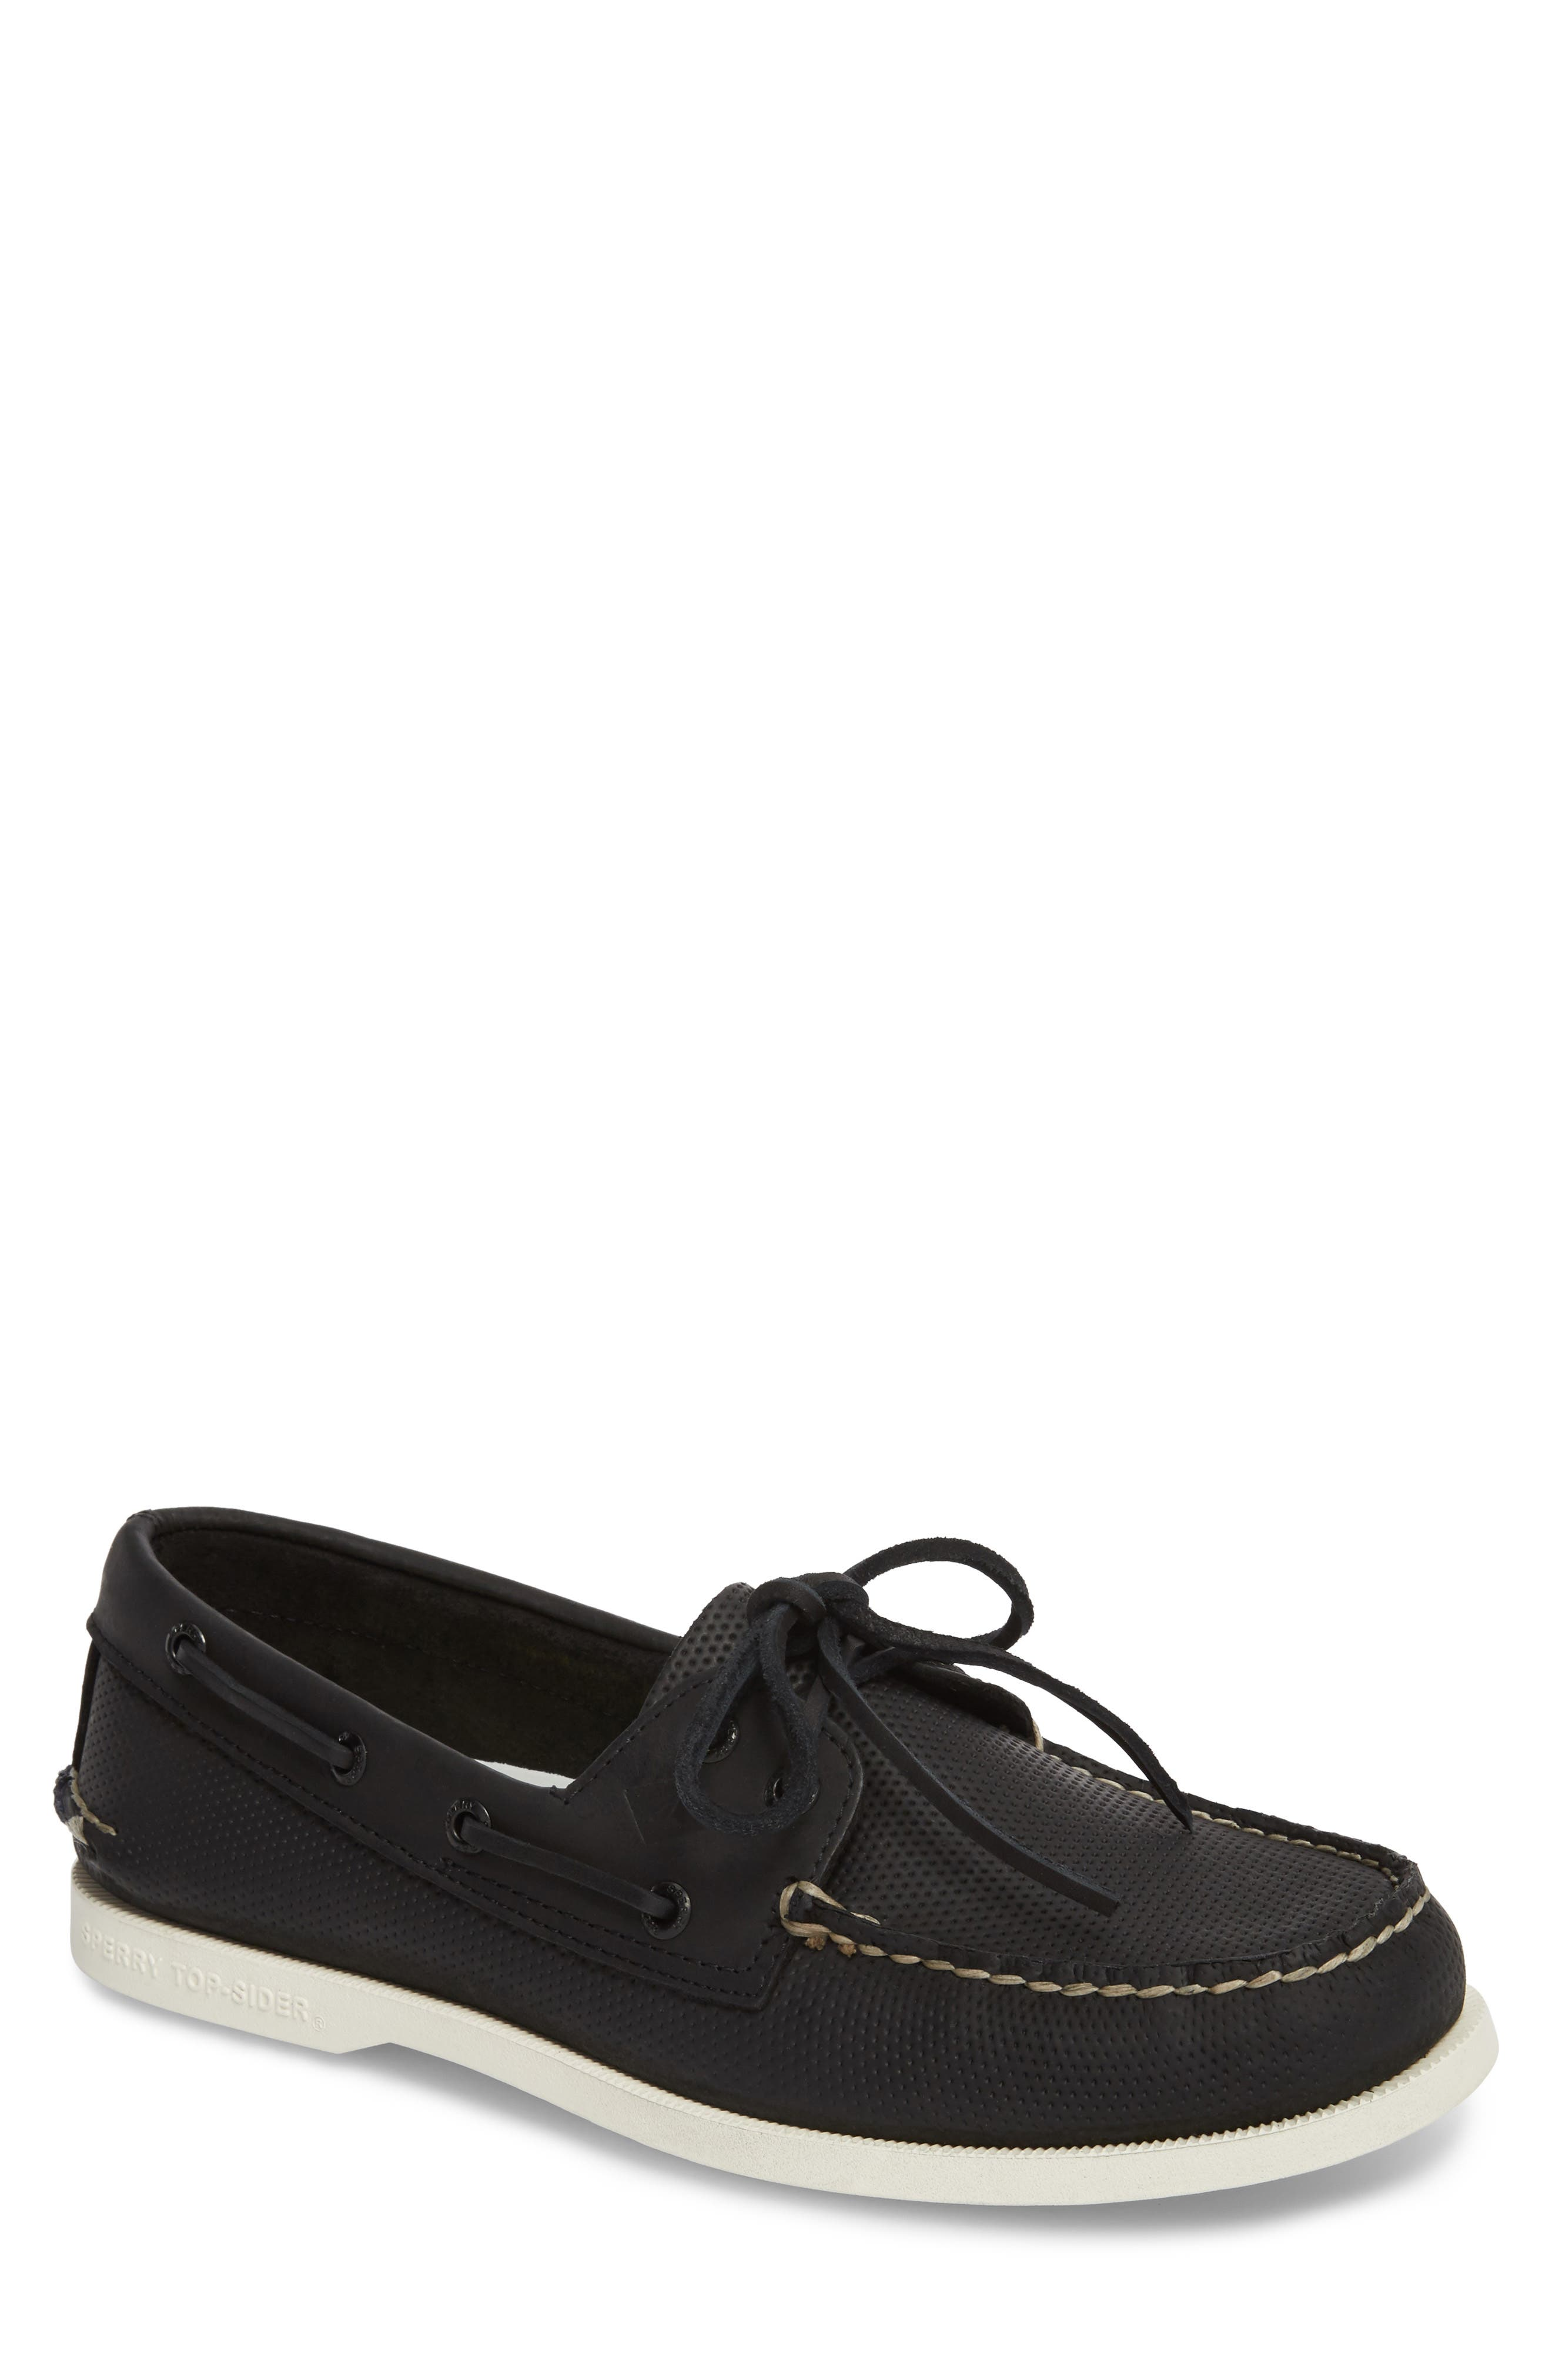 Main Image - Sperry AO 2 Eye Perforated Boat Shoe (Men)